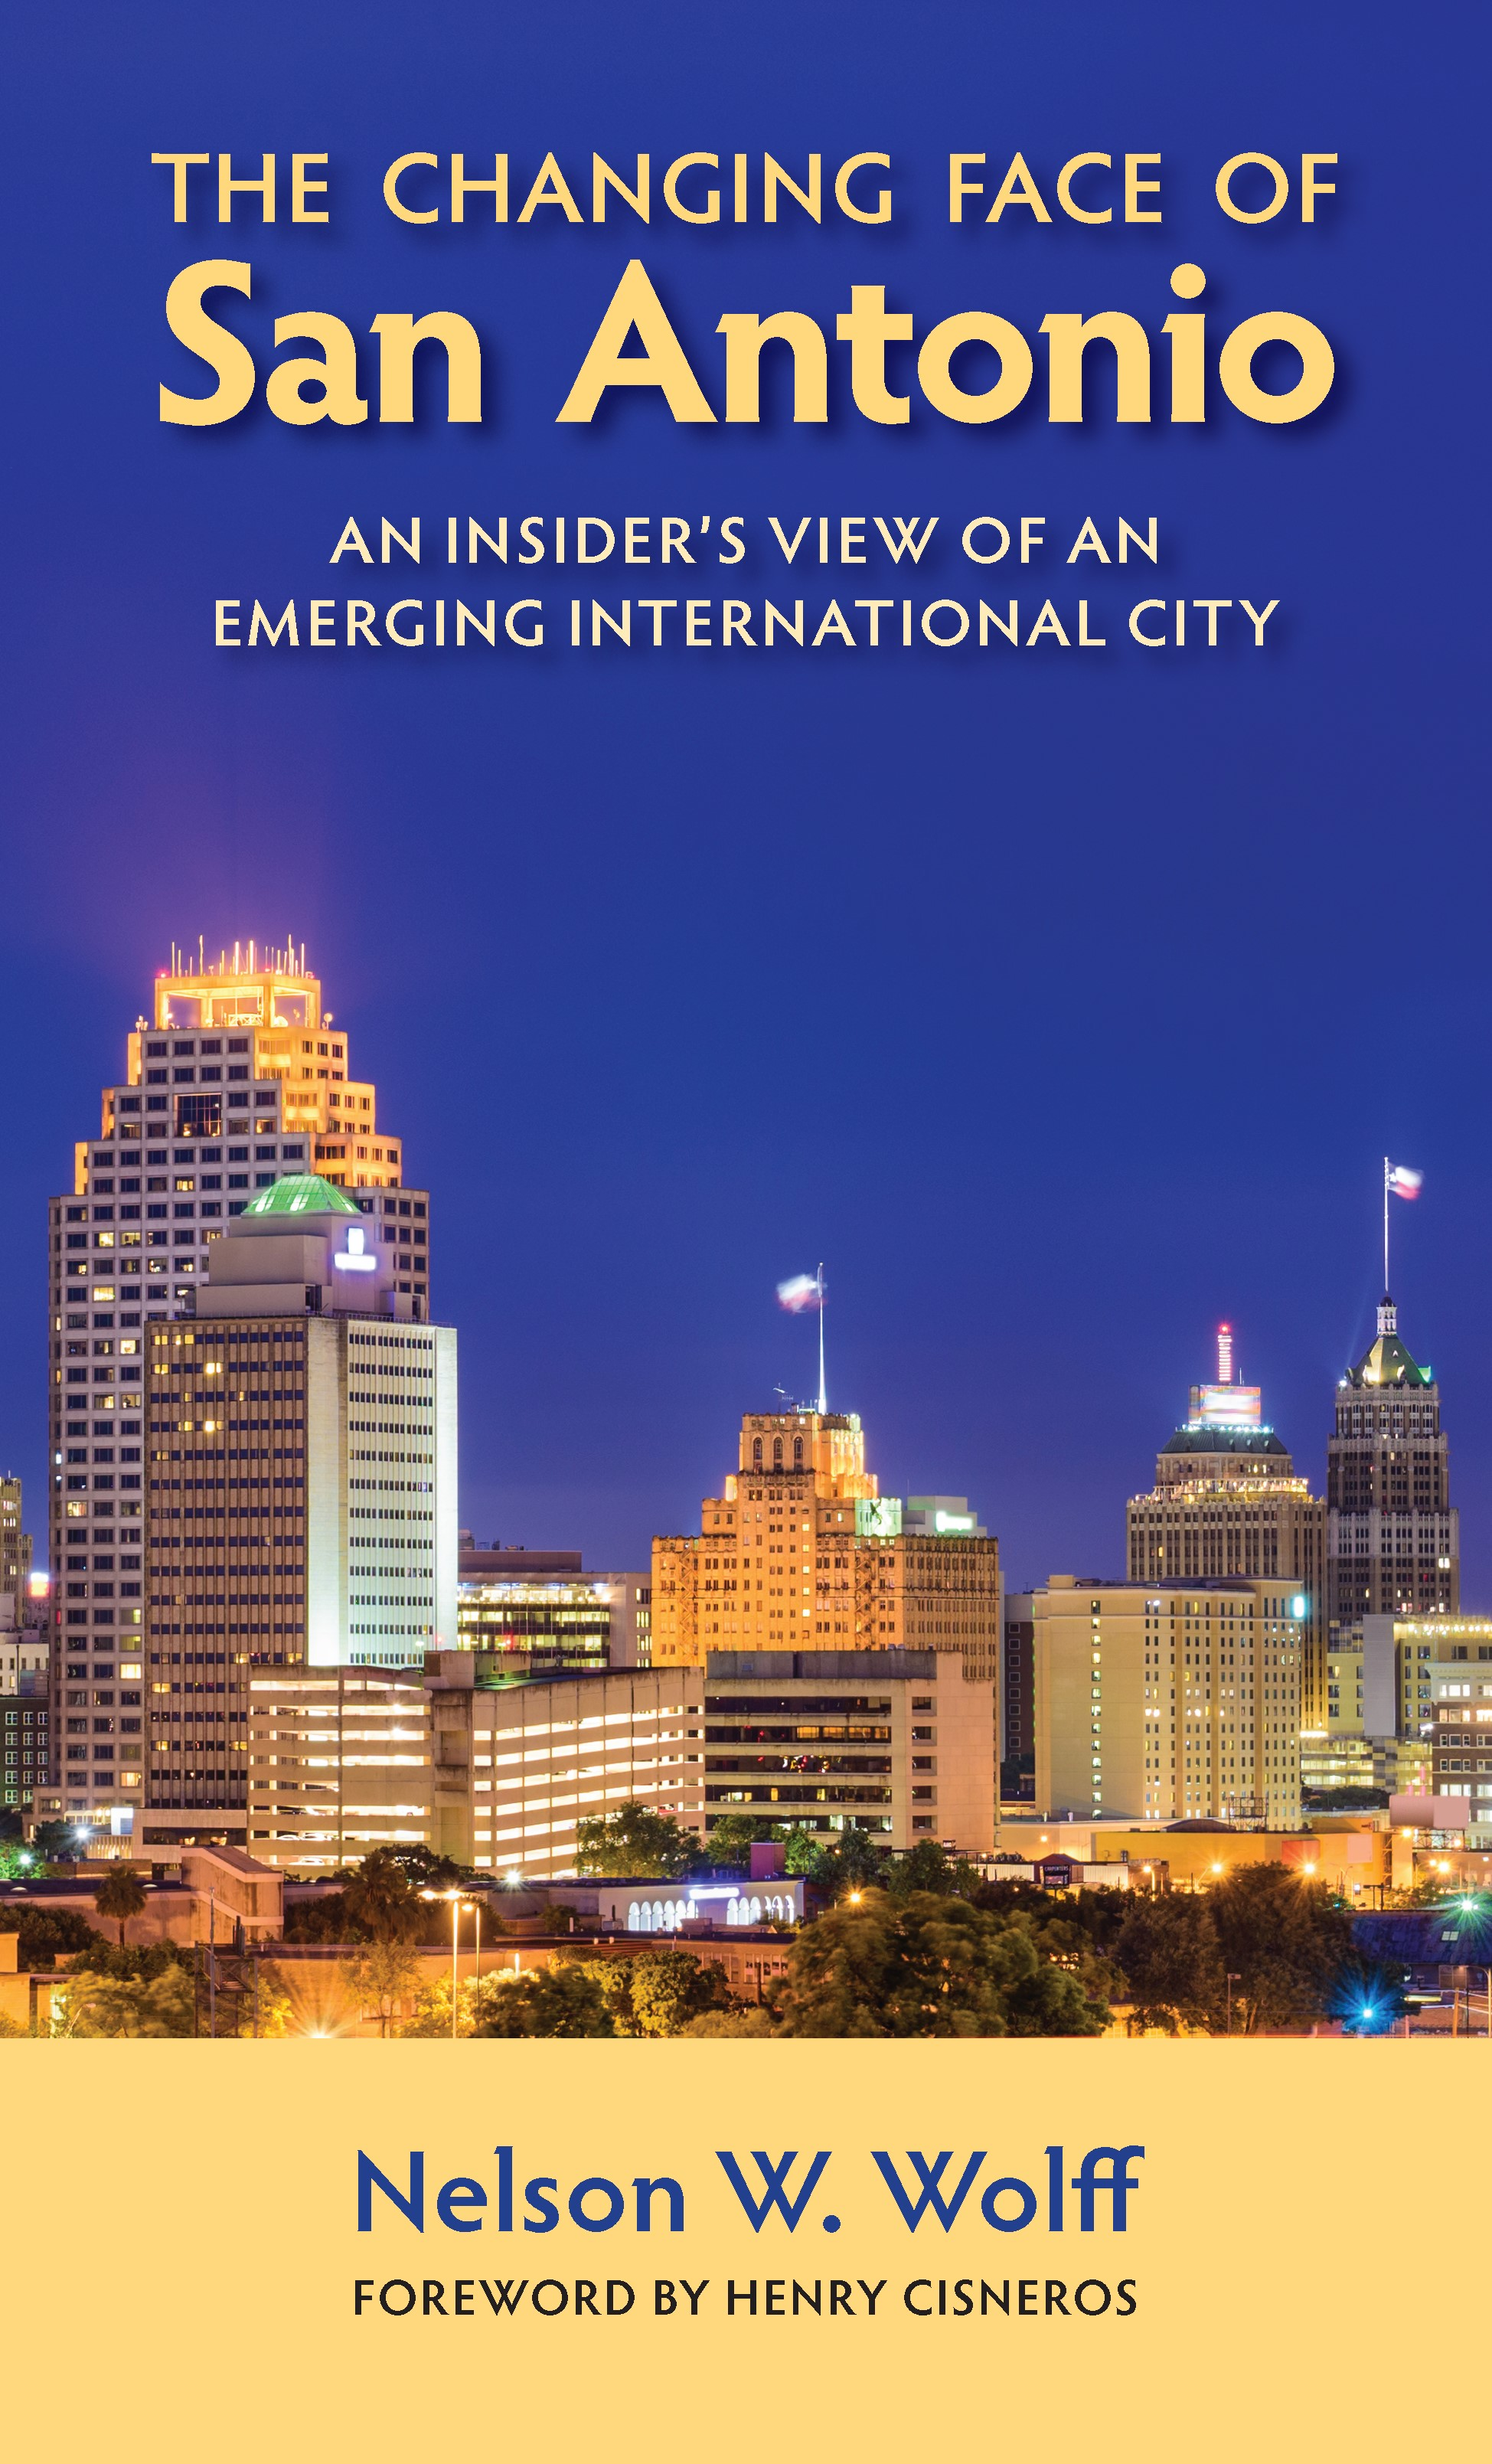 The Changing Face of San Antonio An Insider's View of an Emerging International City